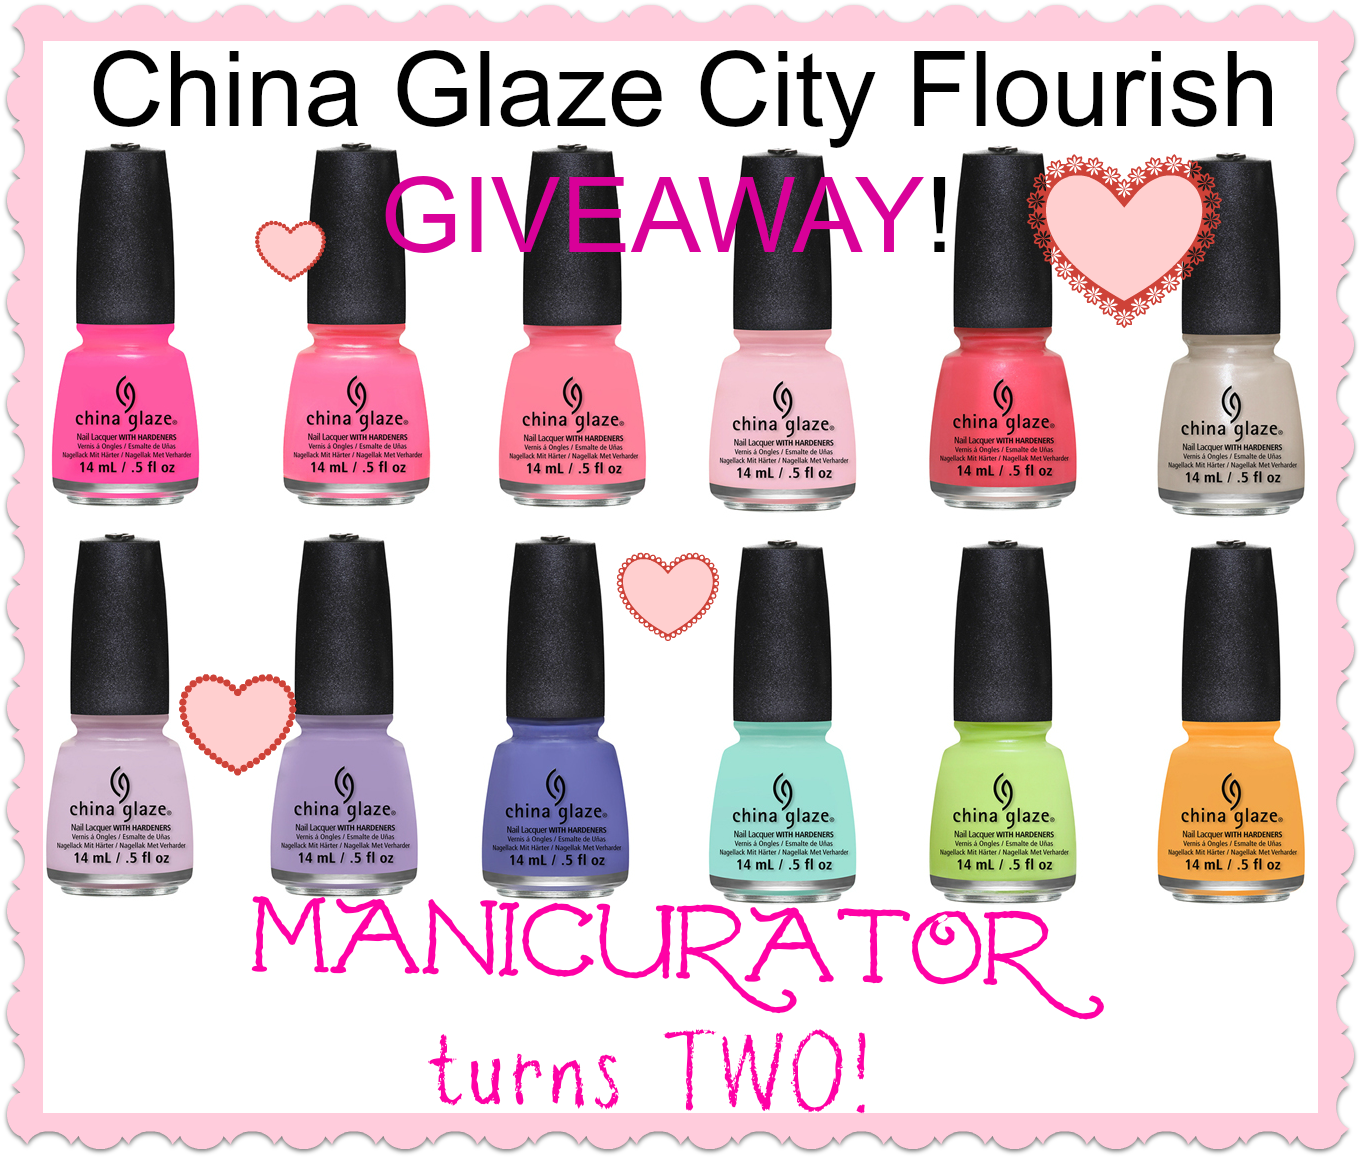 manicurator_China_Glaze_City_Flourish_Spring_Giveaway